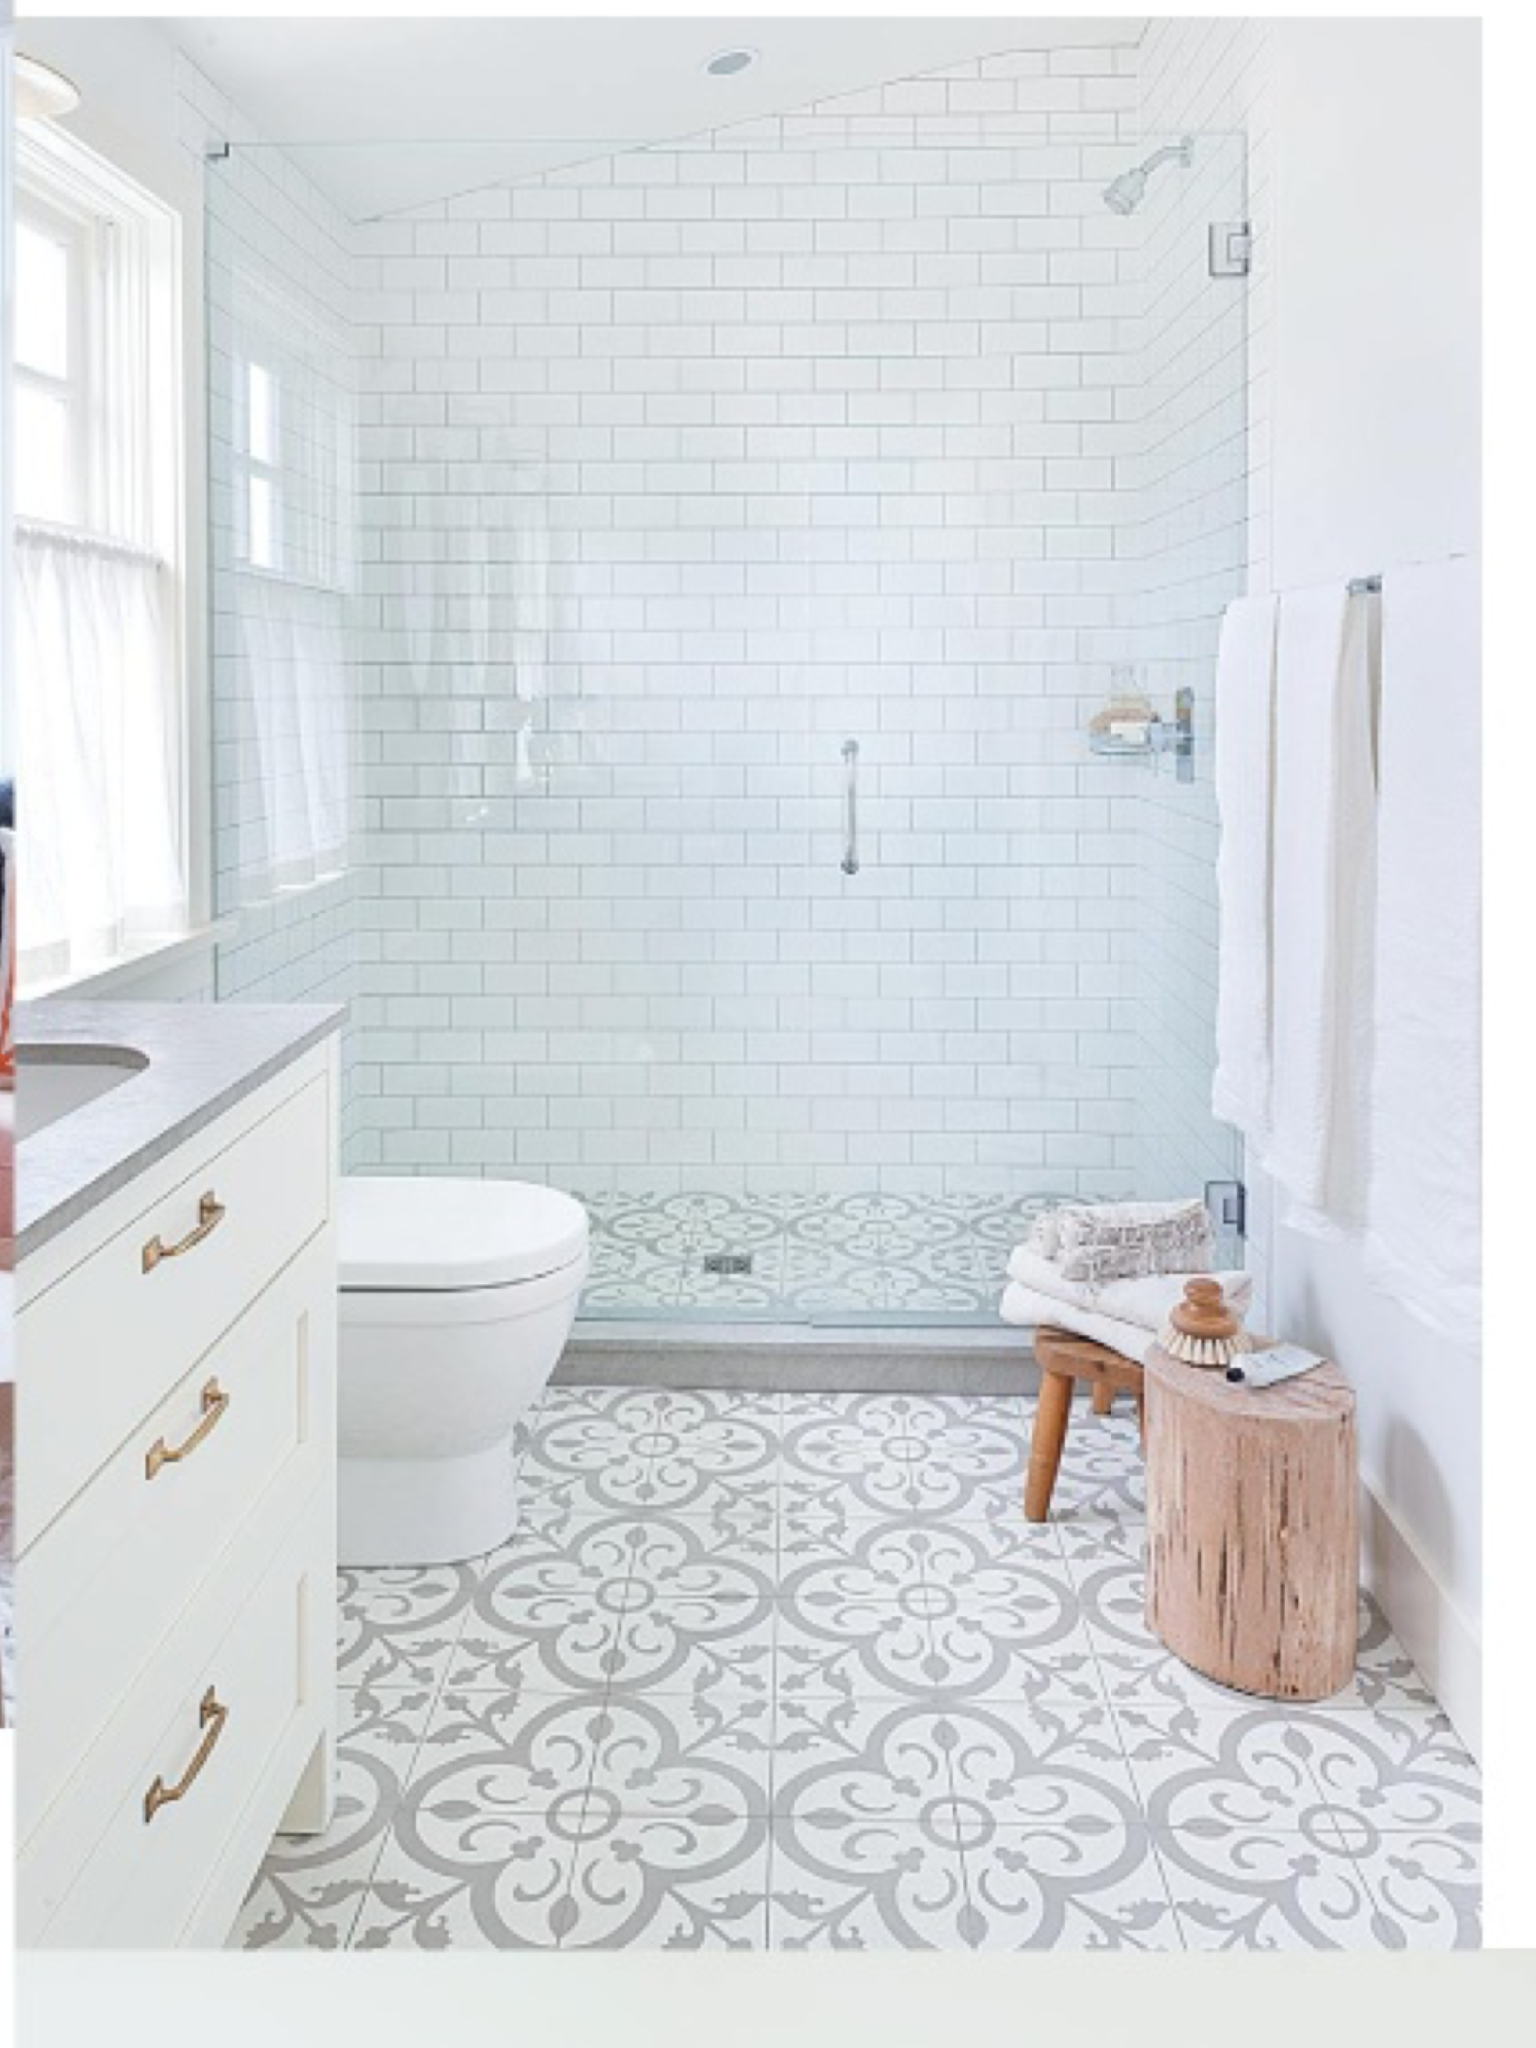 Yes clean fresh classic craftsman home pinterest walkways bathroom floor tile not so plain white bathroom with great walk in shower grey white floor tiles and grey countertop add interest to basic white room dailygadgetfo Images